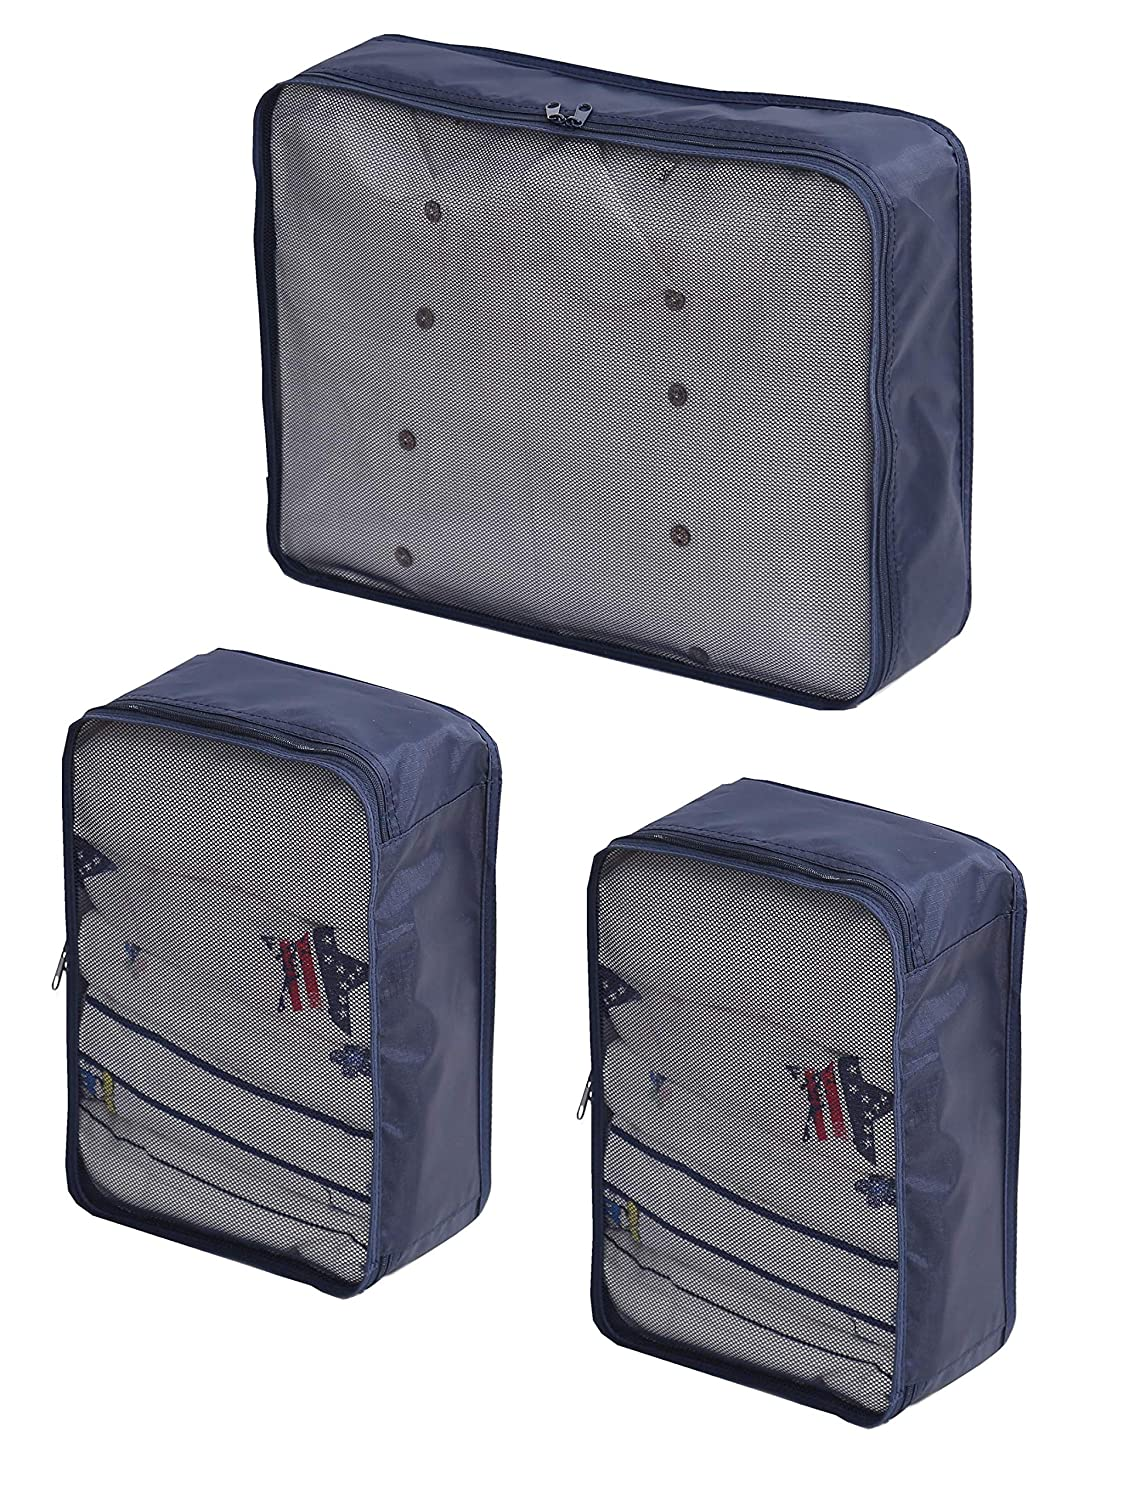 Medium*2 Packing Bags Combination Packing Cubes 3set-TZbonjourney Packing Organizers Large*1 Blue